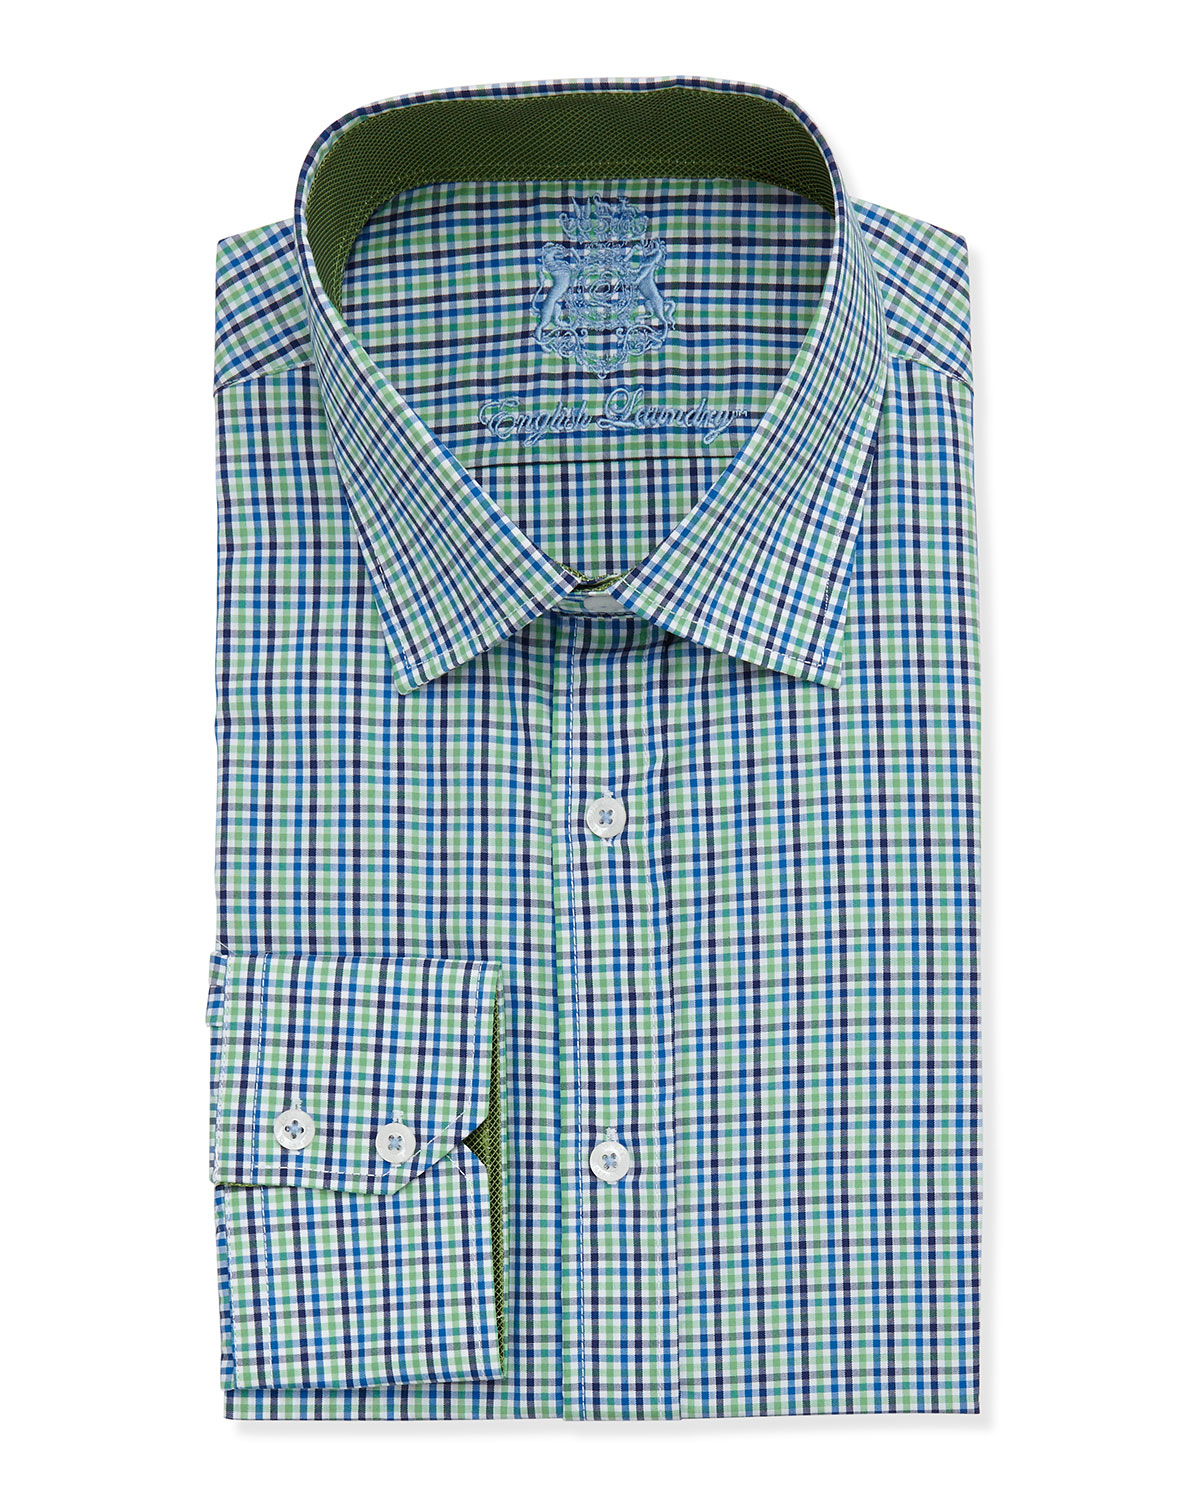 English laundry two tone gingham check dress shirt in blue for Mens green gingham dress shirt